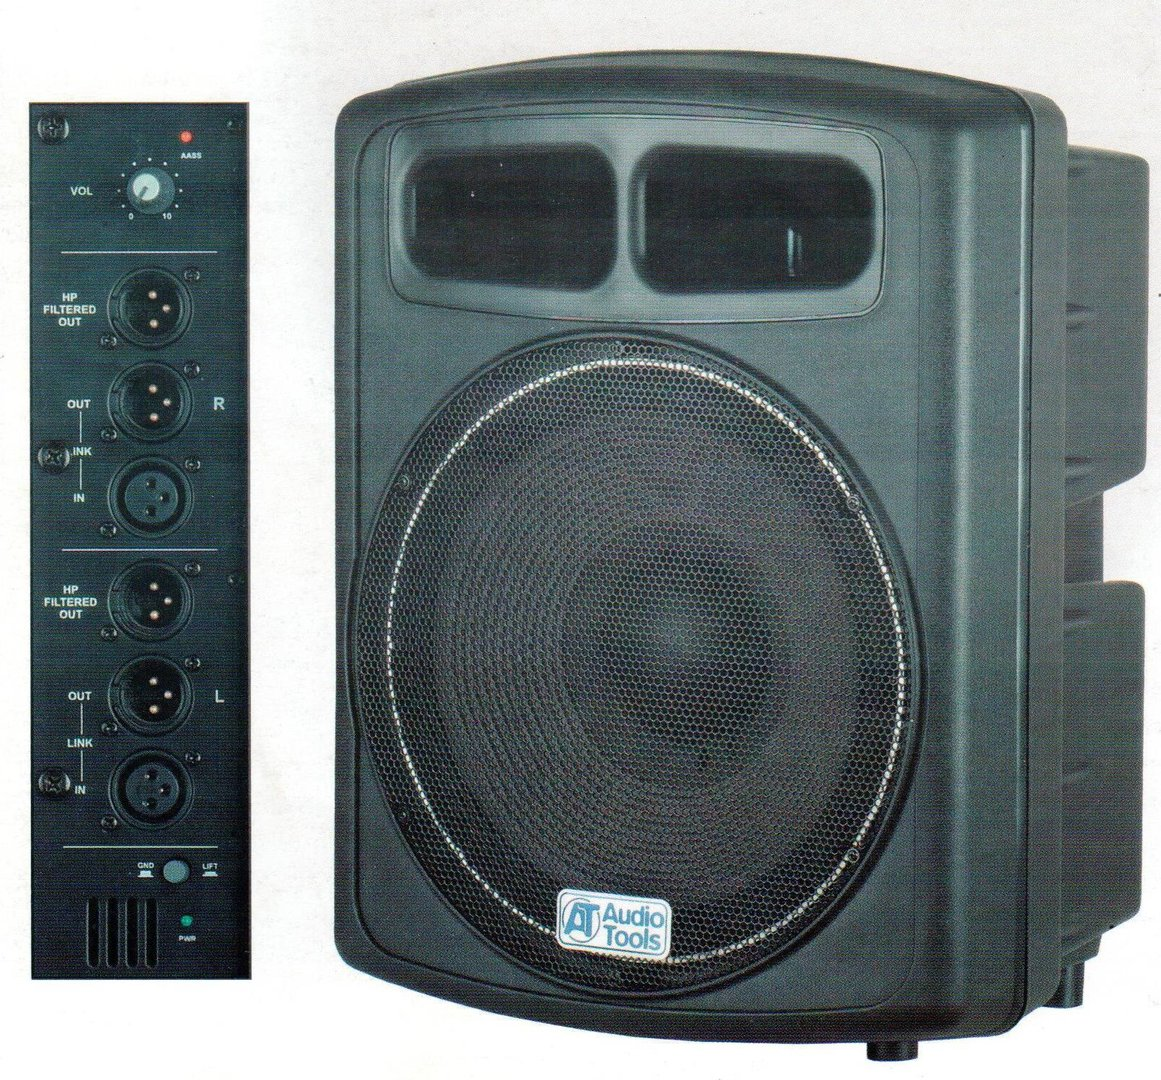 AS151A - AUDIO TOOLS - SUBWOOFER ATTIVO 600W 15""